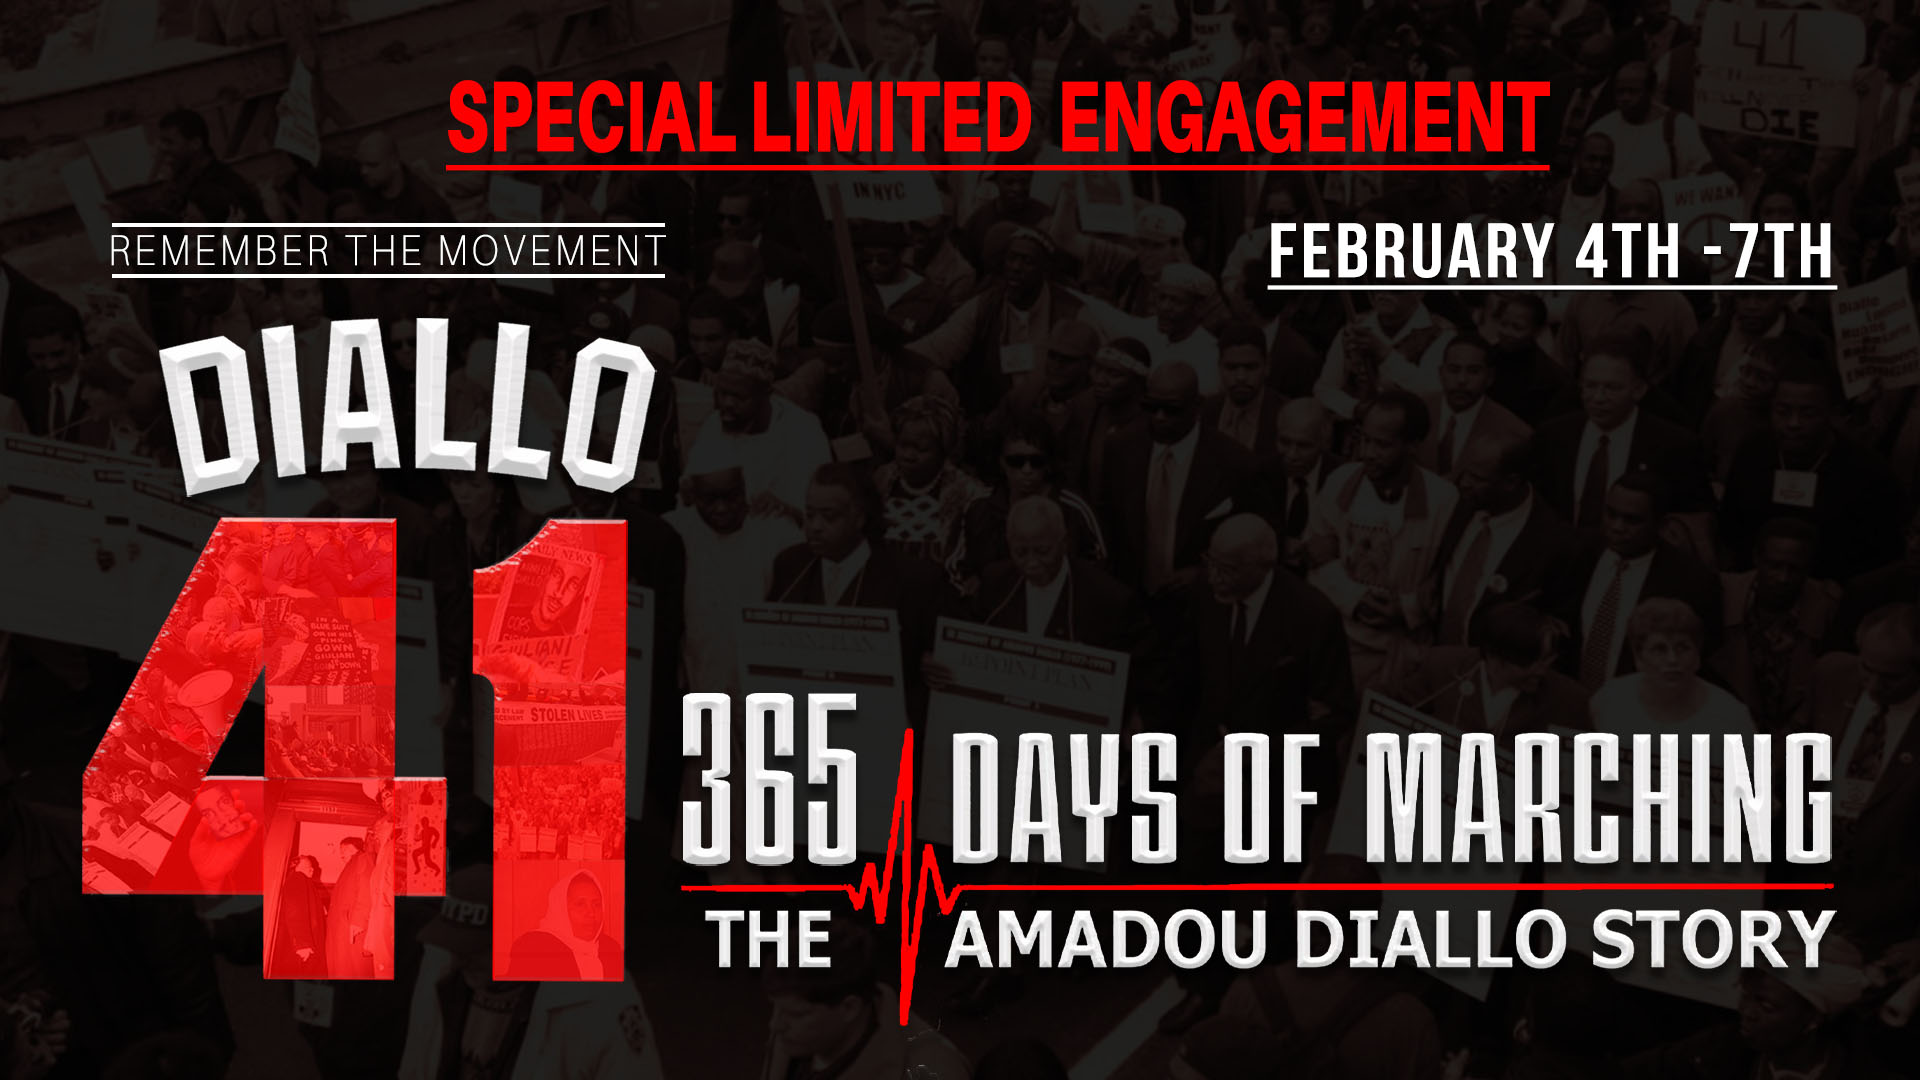 365 DAYS OF MARCHING - THE AMADOU DIALLO STORY